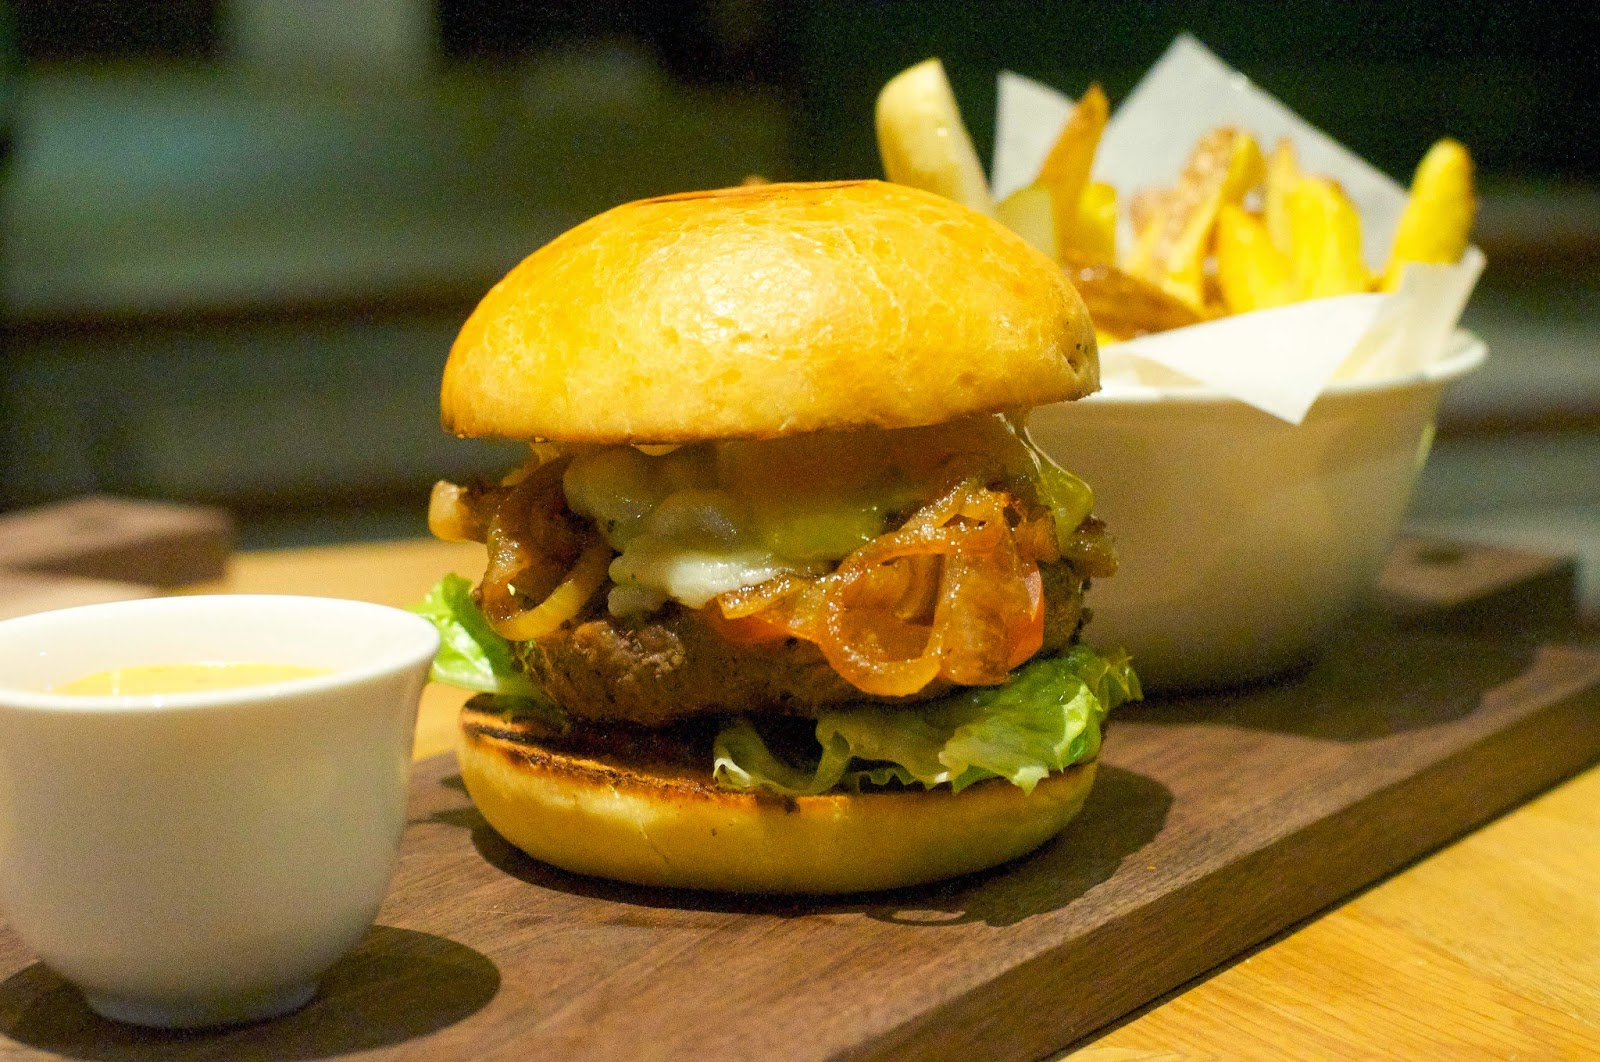 Providore: Grass-fed beef burger